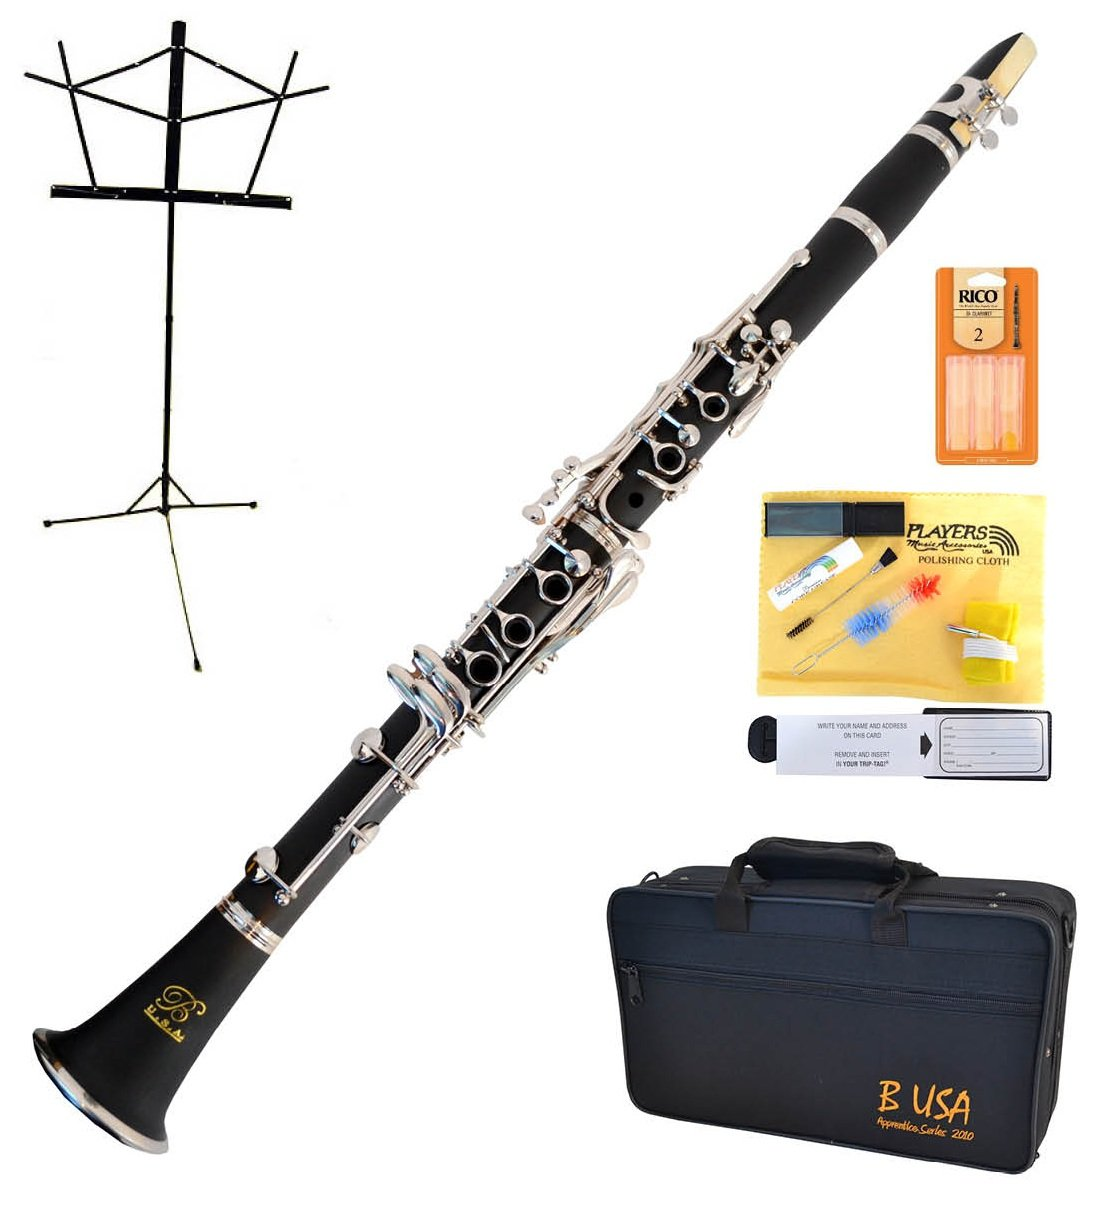 Bridgecraft WCL-GBK1 Apprentice Series Bb Clarinet Package Simulated Wood Grain Finish with Care Kit, Stand and Deluxe Case, Grain Black